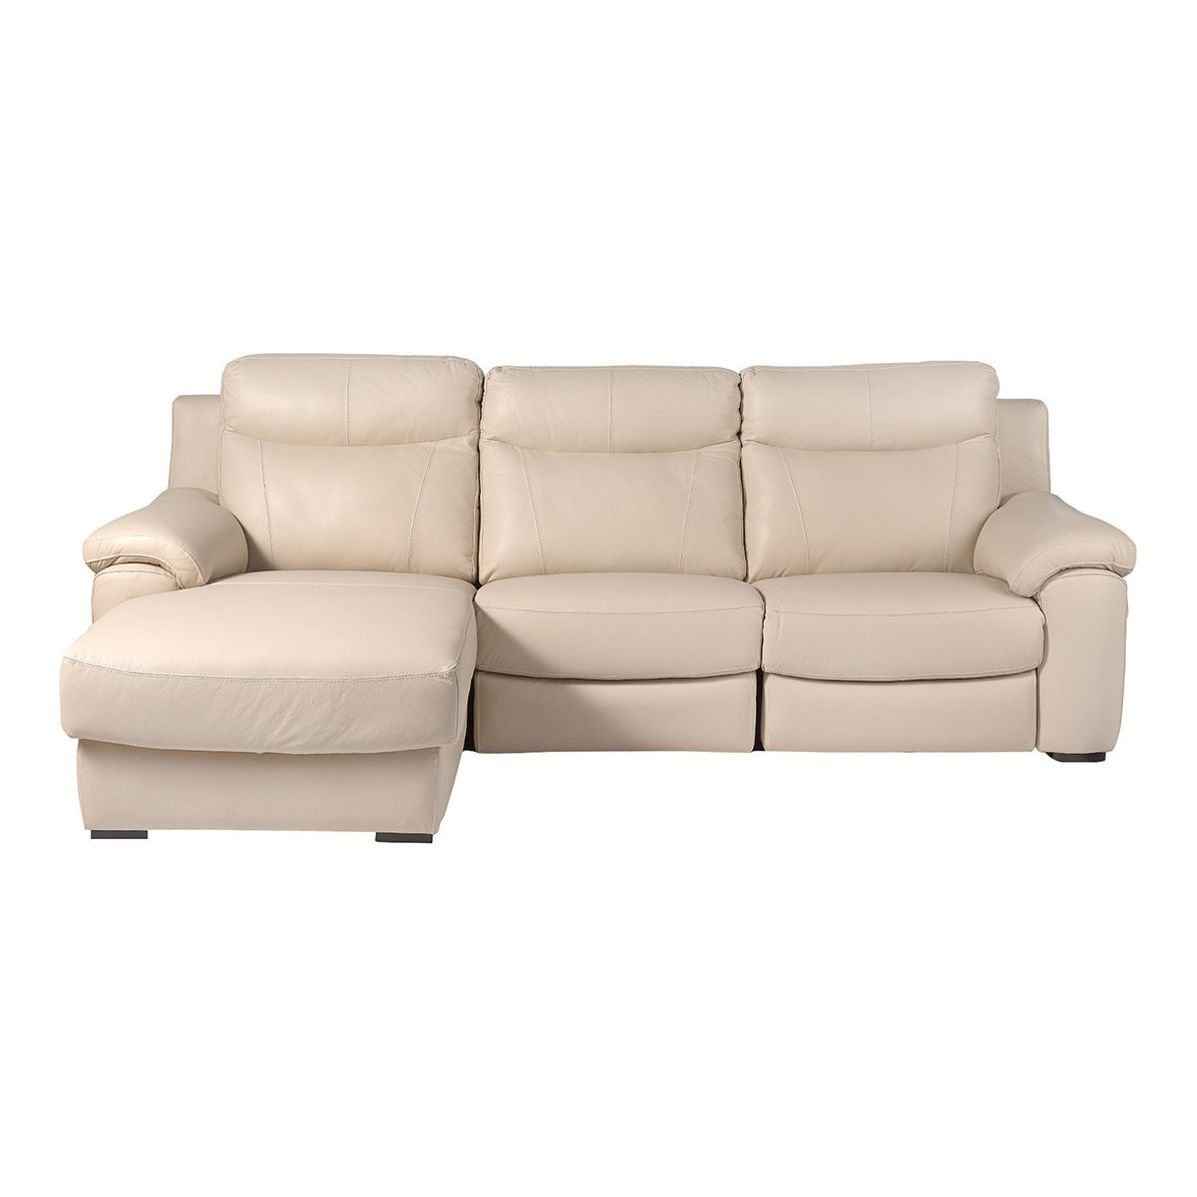 Sofa Clasico Ingles Of Sof S Chaise Longue El Corte Ingl S